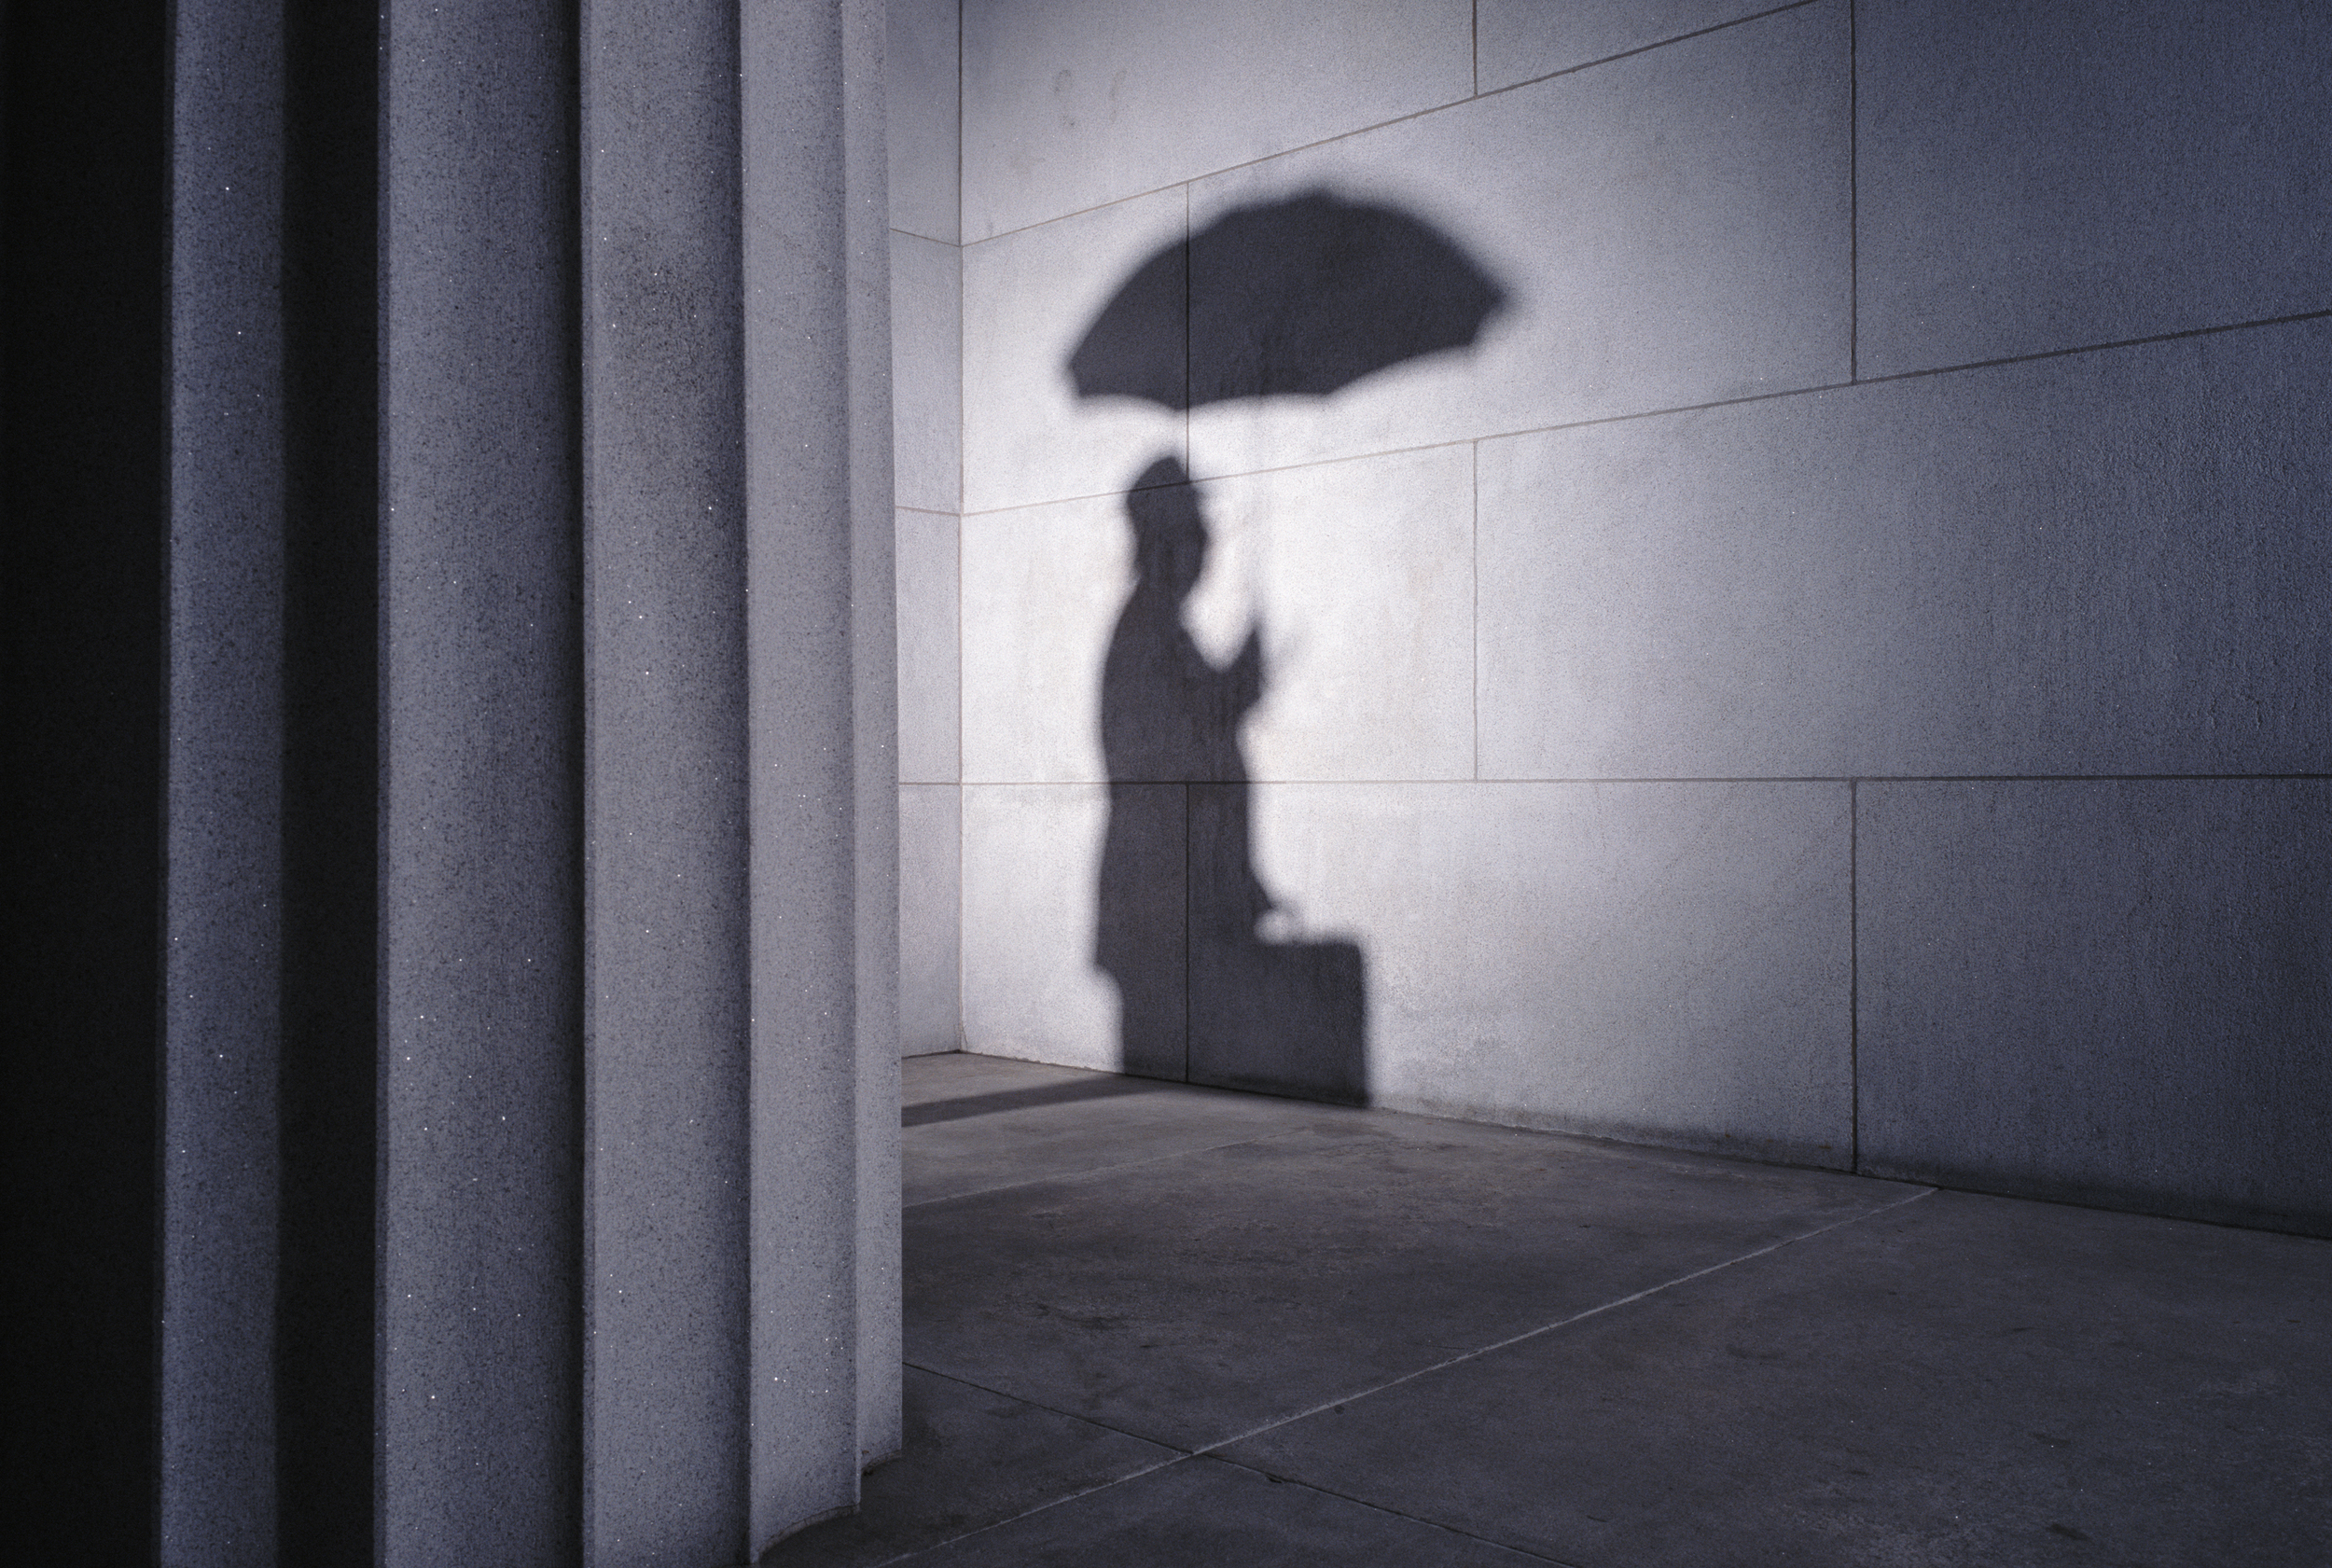 Getty Images - Shadowed